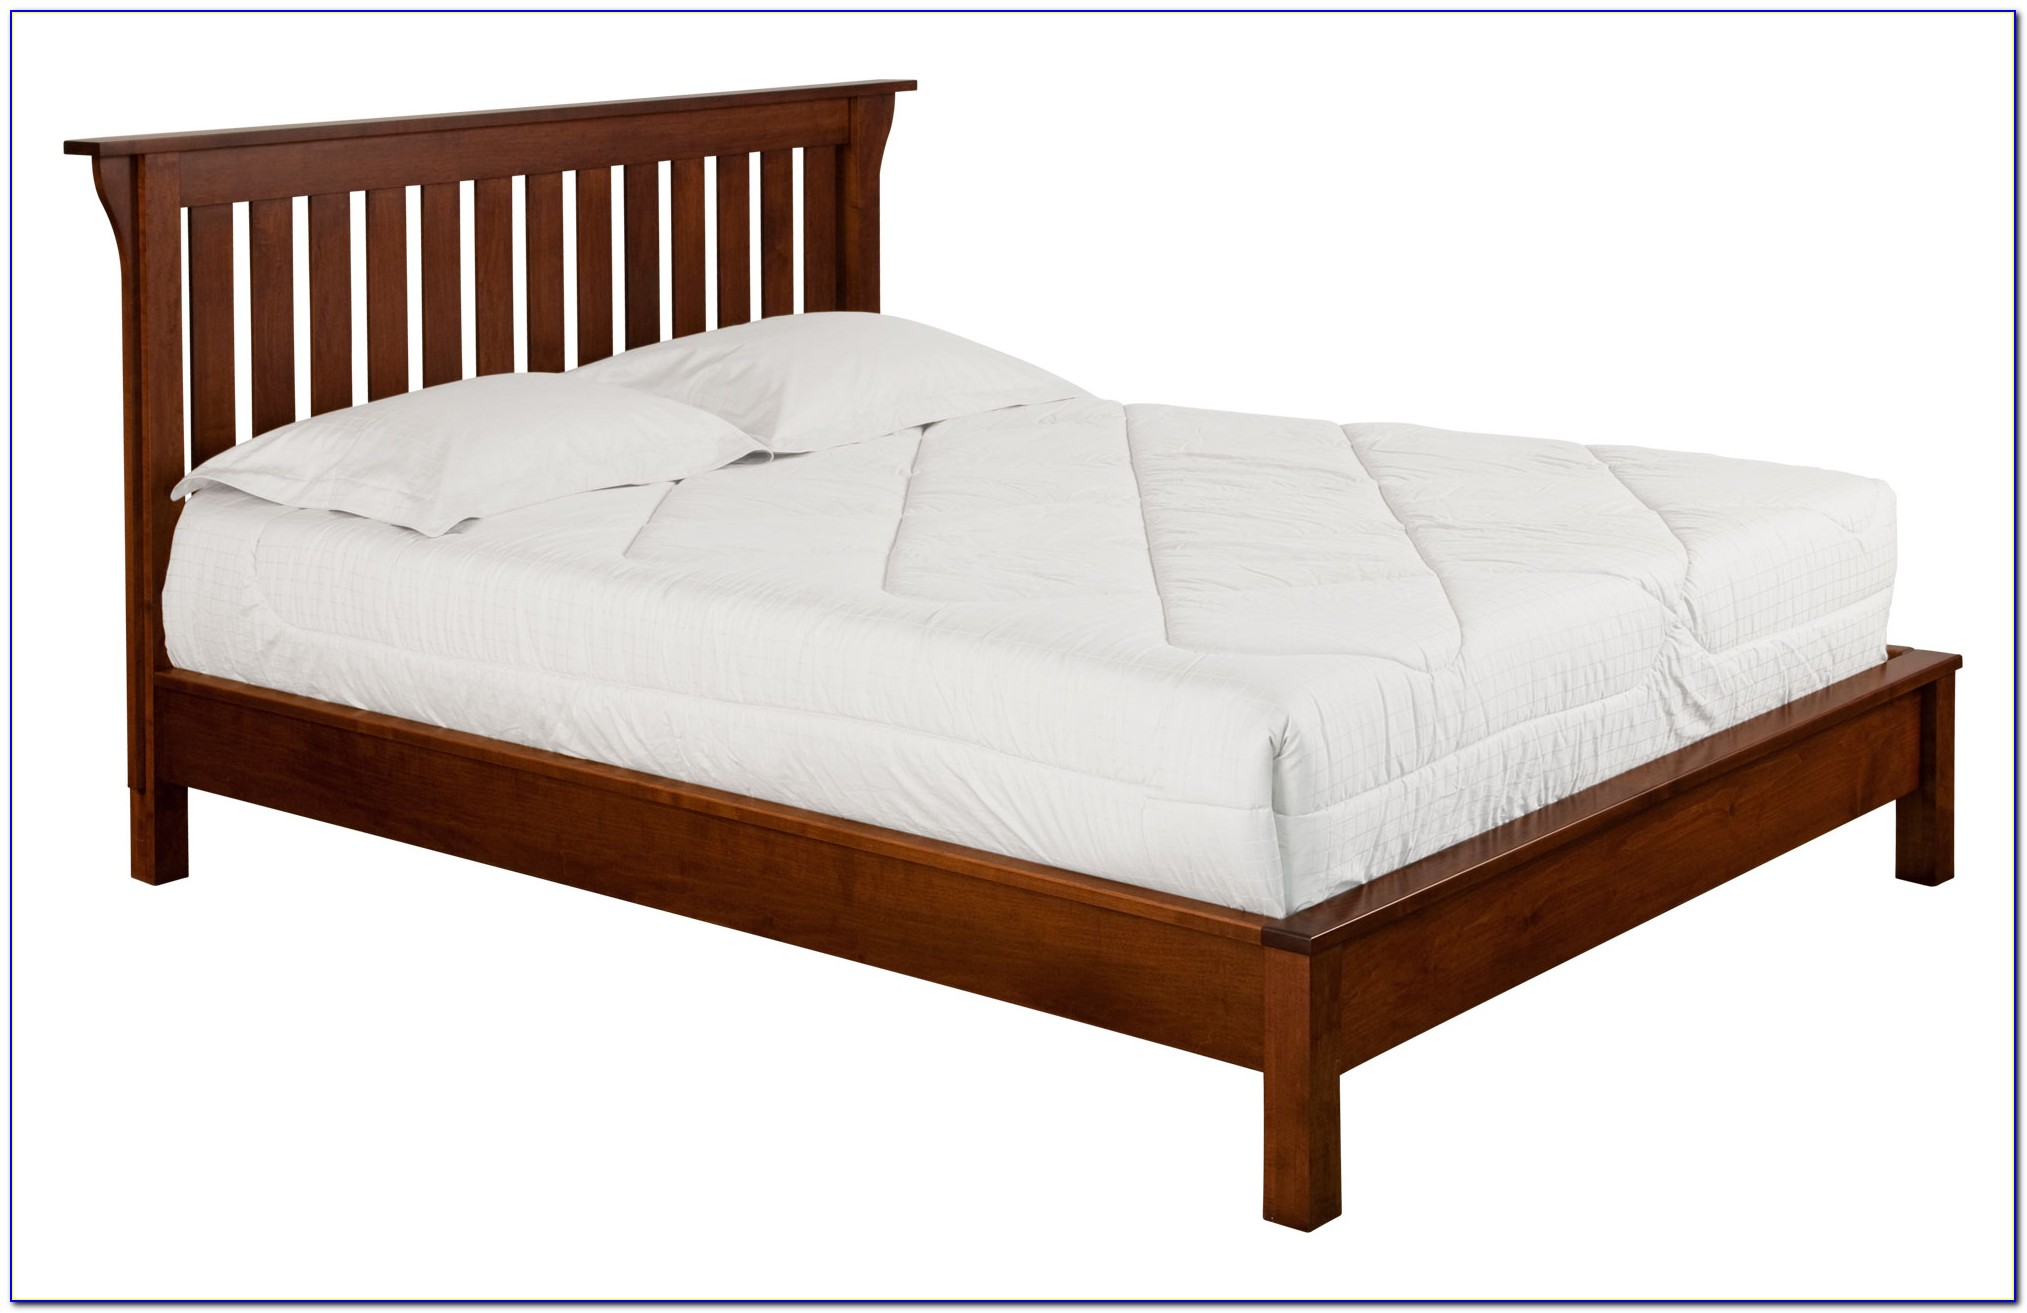 Headboard Full Size Bed Frame